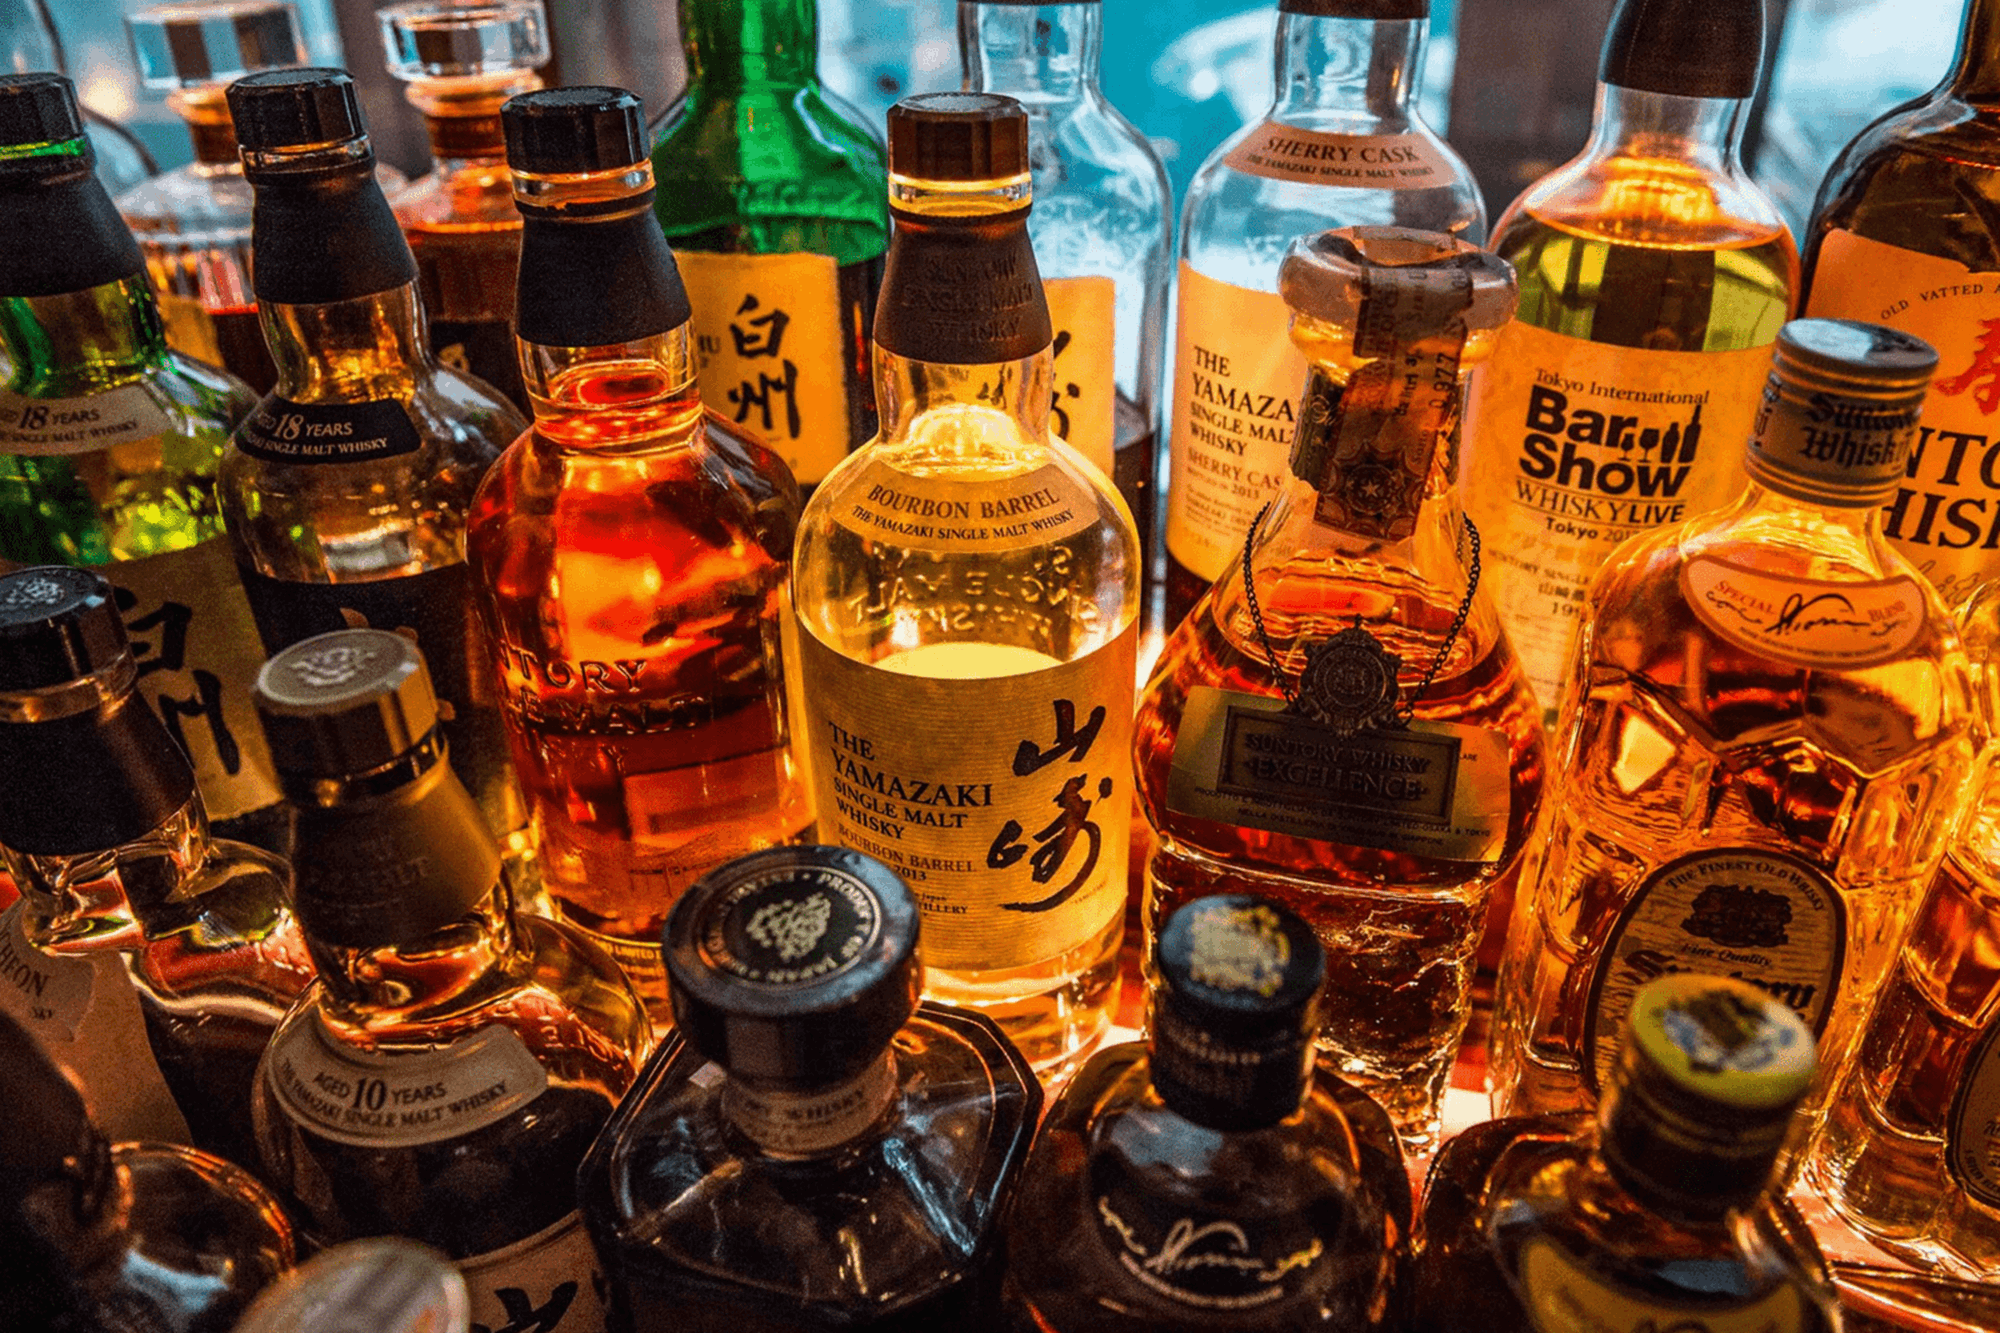 The Bar at Sexy Fish in Mayfair holds the world's largest whisky collection as well as serving inventive cocktails until late